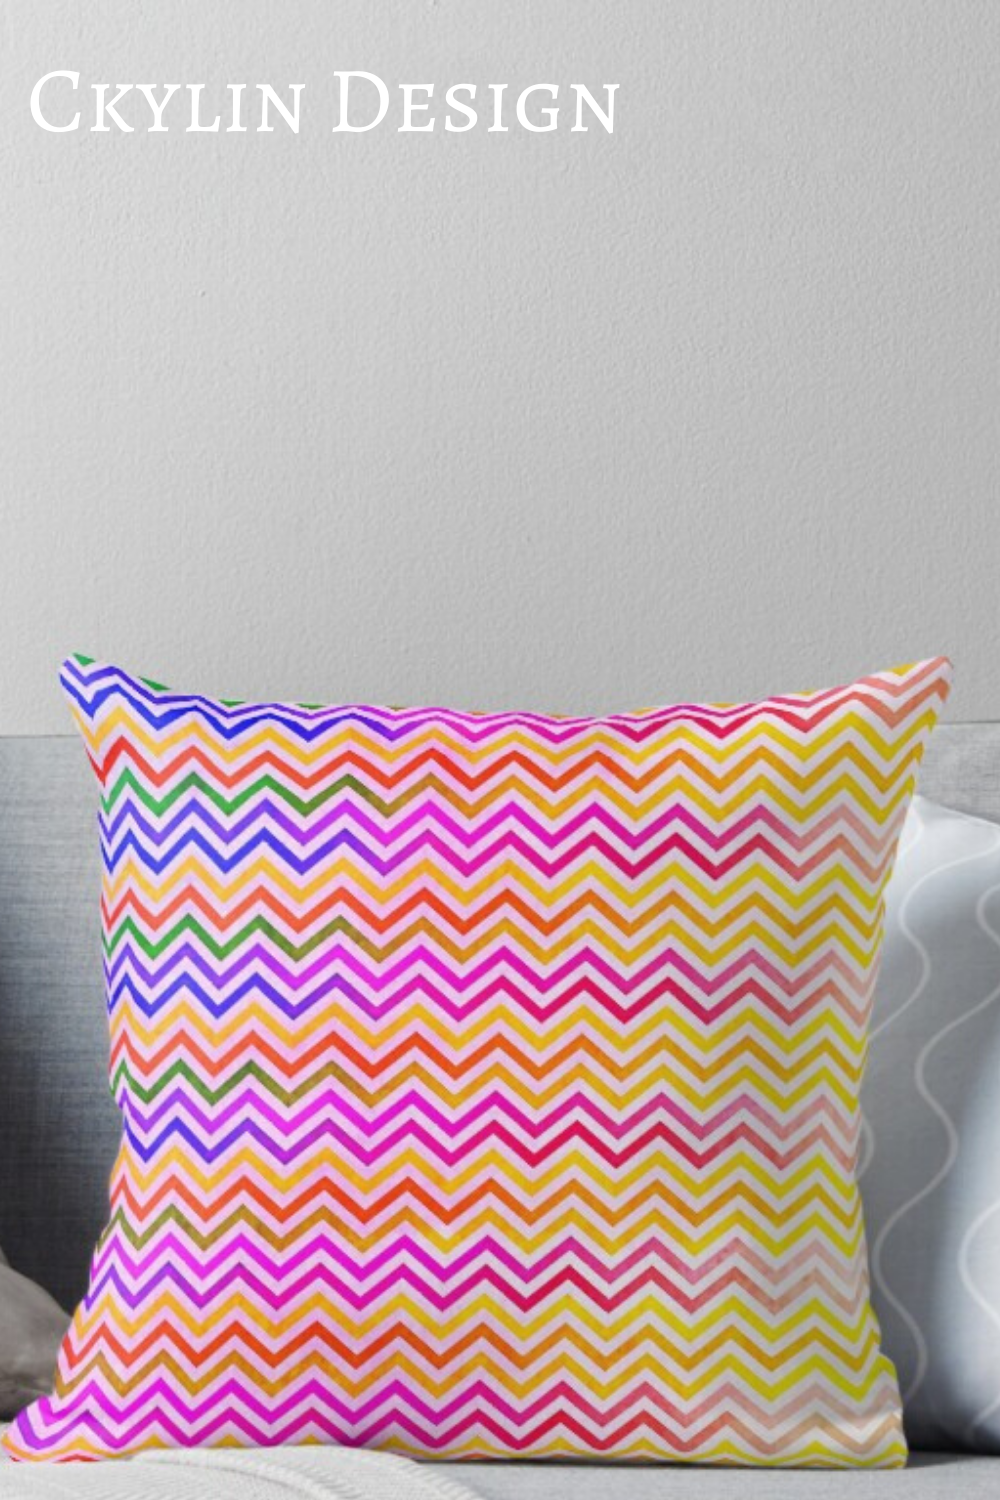 Here's a throw pillow with a very vibrant color gradient, as an effect of a light leak, which also has some metallic qualities. The rainbow and pride was my inspiration for this design. Color is life, after all! Dare to do colorful home decor.  #pillowcase #cushions #pillowcover #pillowcases #pillowlove #pillowsfordays #pillowcovers #pillowdesign #pillowcustom #redbubblestore #printart #printartist #printspotters #homedecor #livingroominspo #interiordesign #interiør #livingroominspo #homedecor